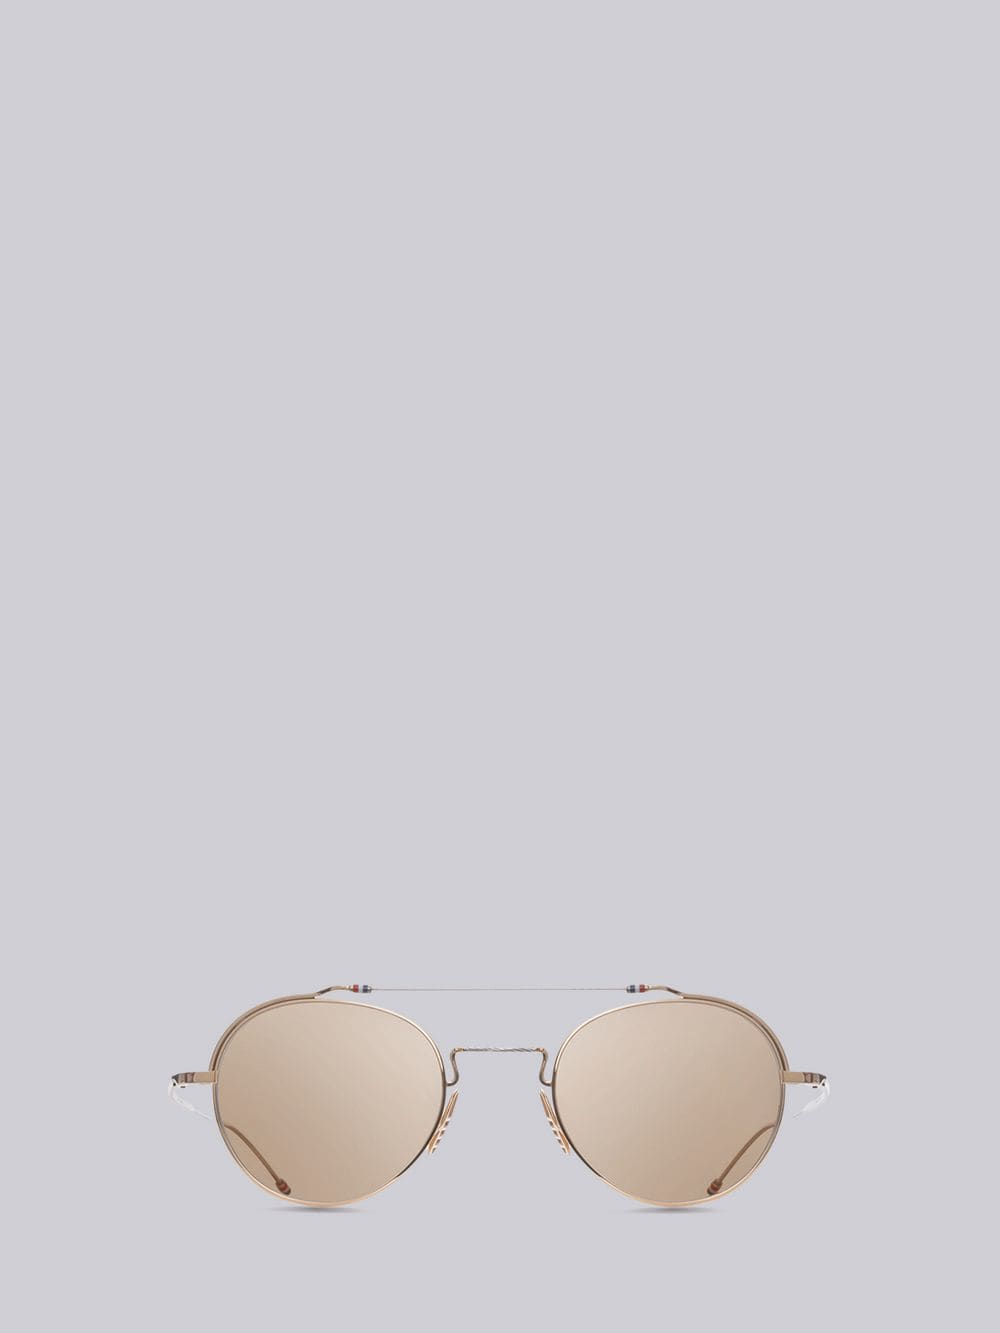 White Gold & Silver Sunglasses.jpg